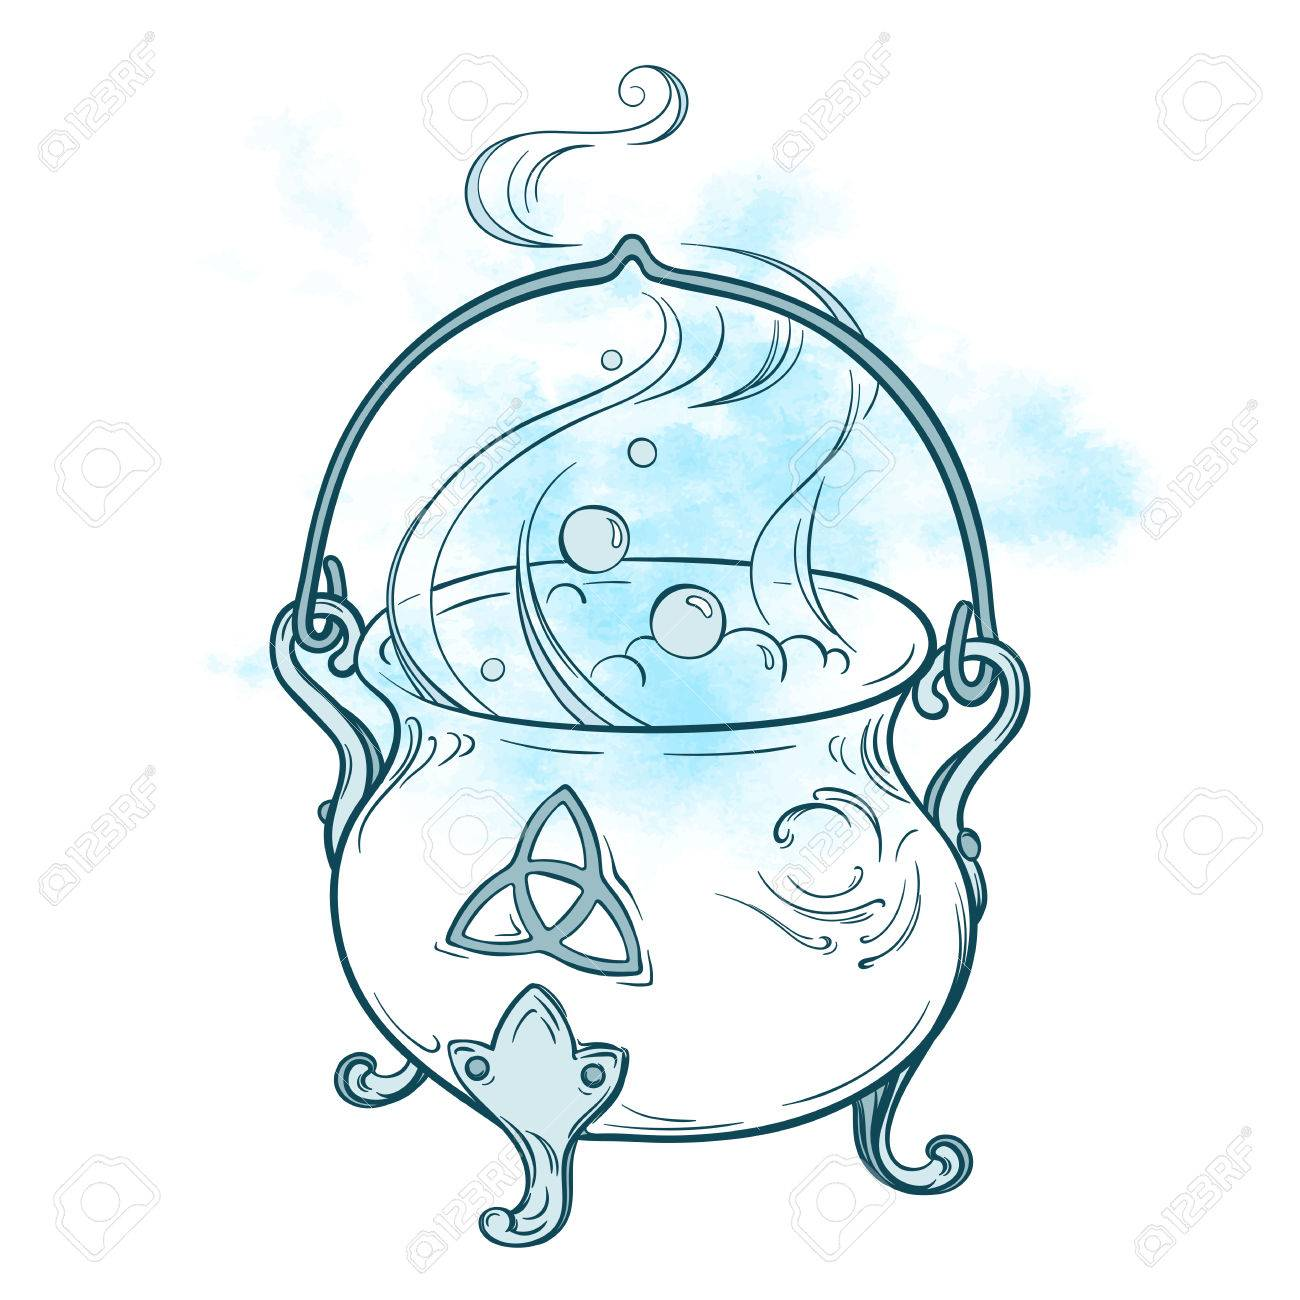 Blue boiling magic cauldron. Hand drawn wiccan design, astrology, alchemy, magic symbol isolated over abstract watercolor background vector illustration - 63714421